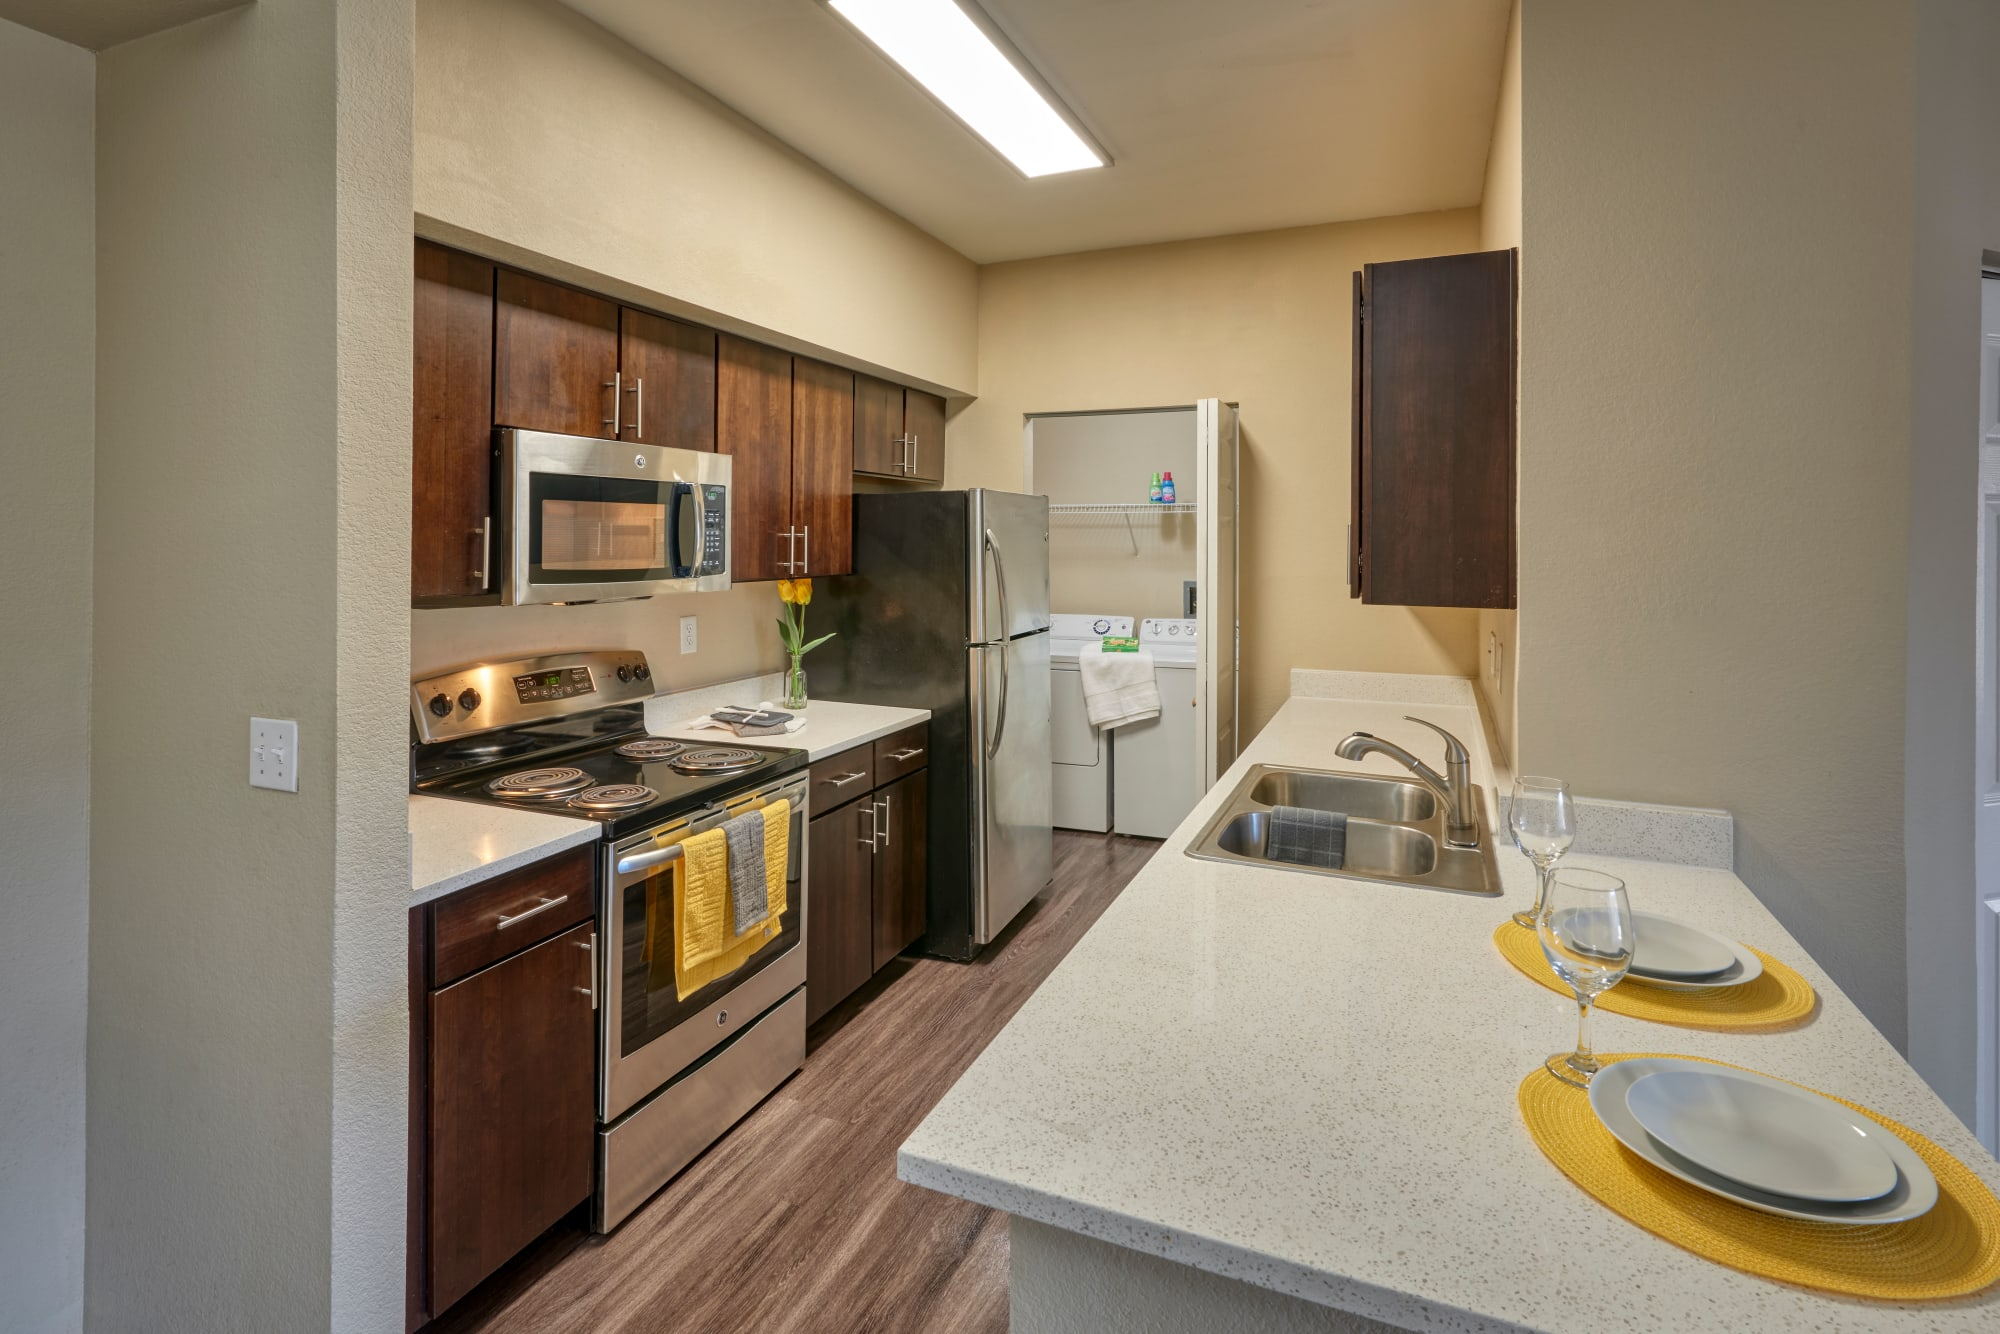 A renovated kitchen with brown cabinets and a breakfast bar at The Crossings at Bear Creek Apartments in Lakewood, Colorado